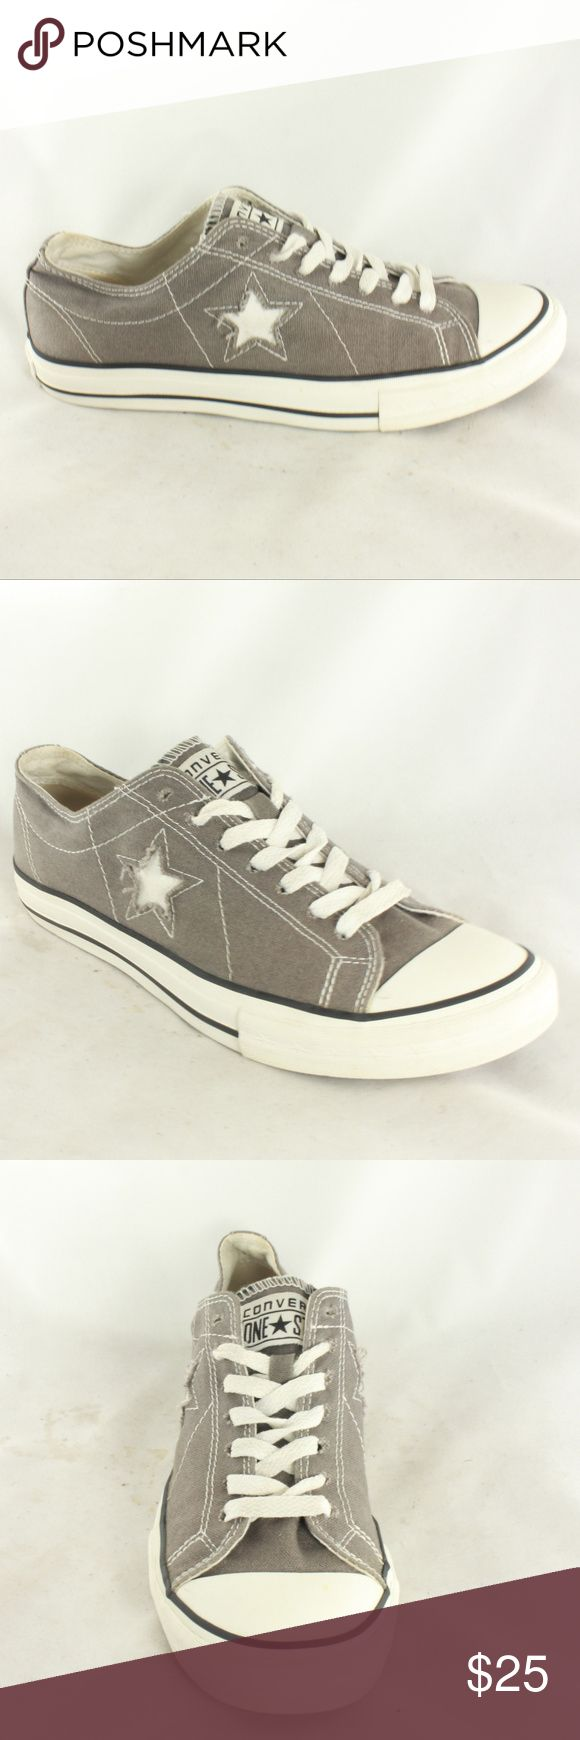 Like New CONVERSE ONE STAR Womens Low Top Sneakers Gray finish canvas, clean insole, white midsole and excellent sole and heel. Great addition to any closet.  Size 9 Converse Shoes Sneakers